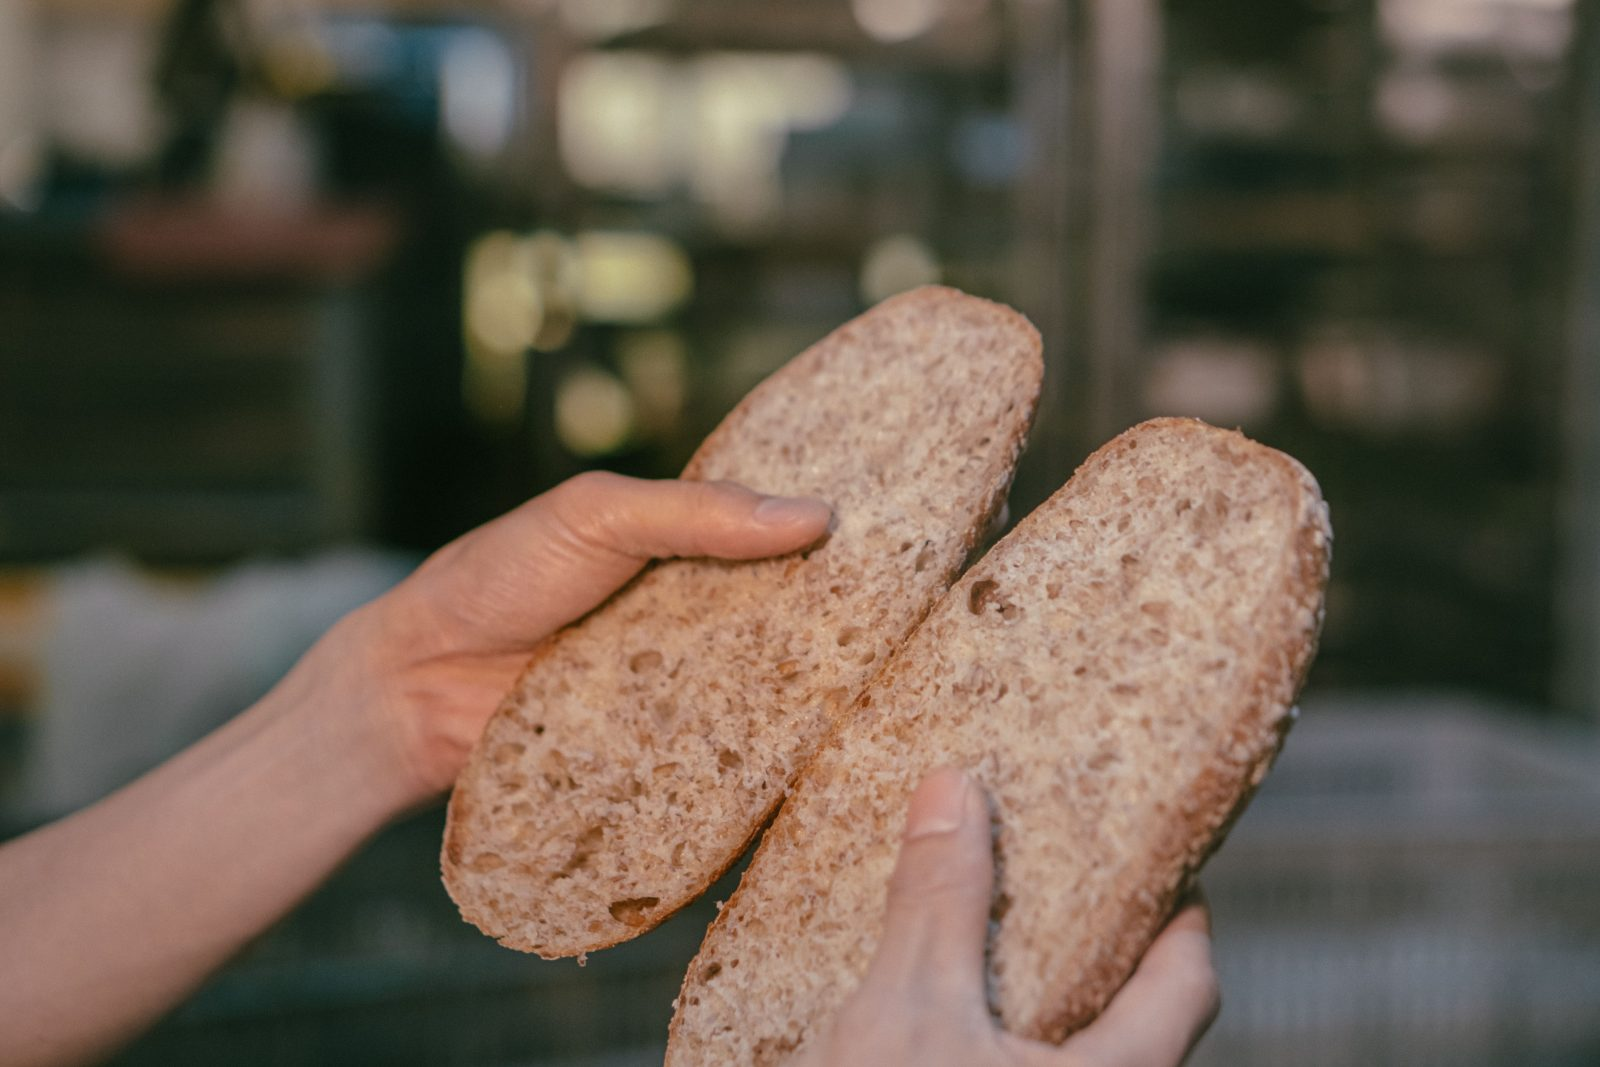 Nick showing us the crumb inside his sprouted wheat loaf.